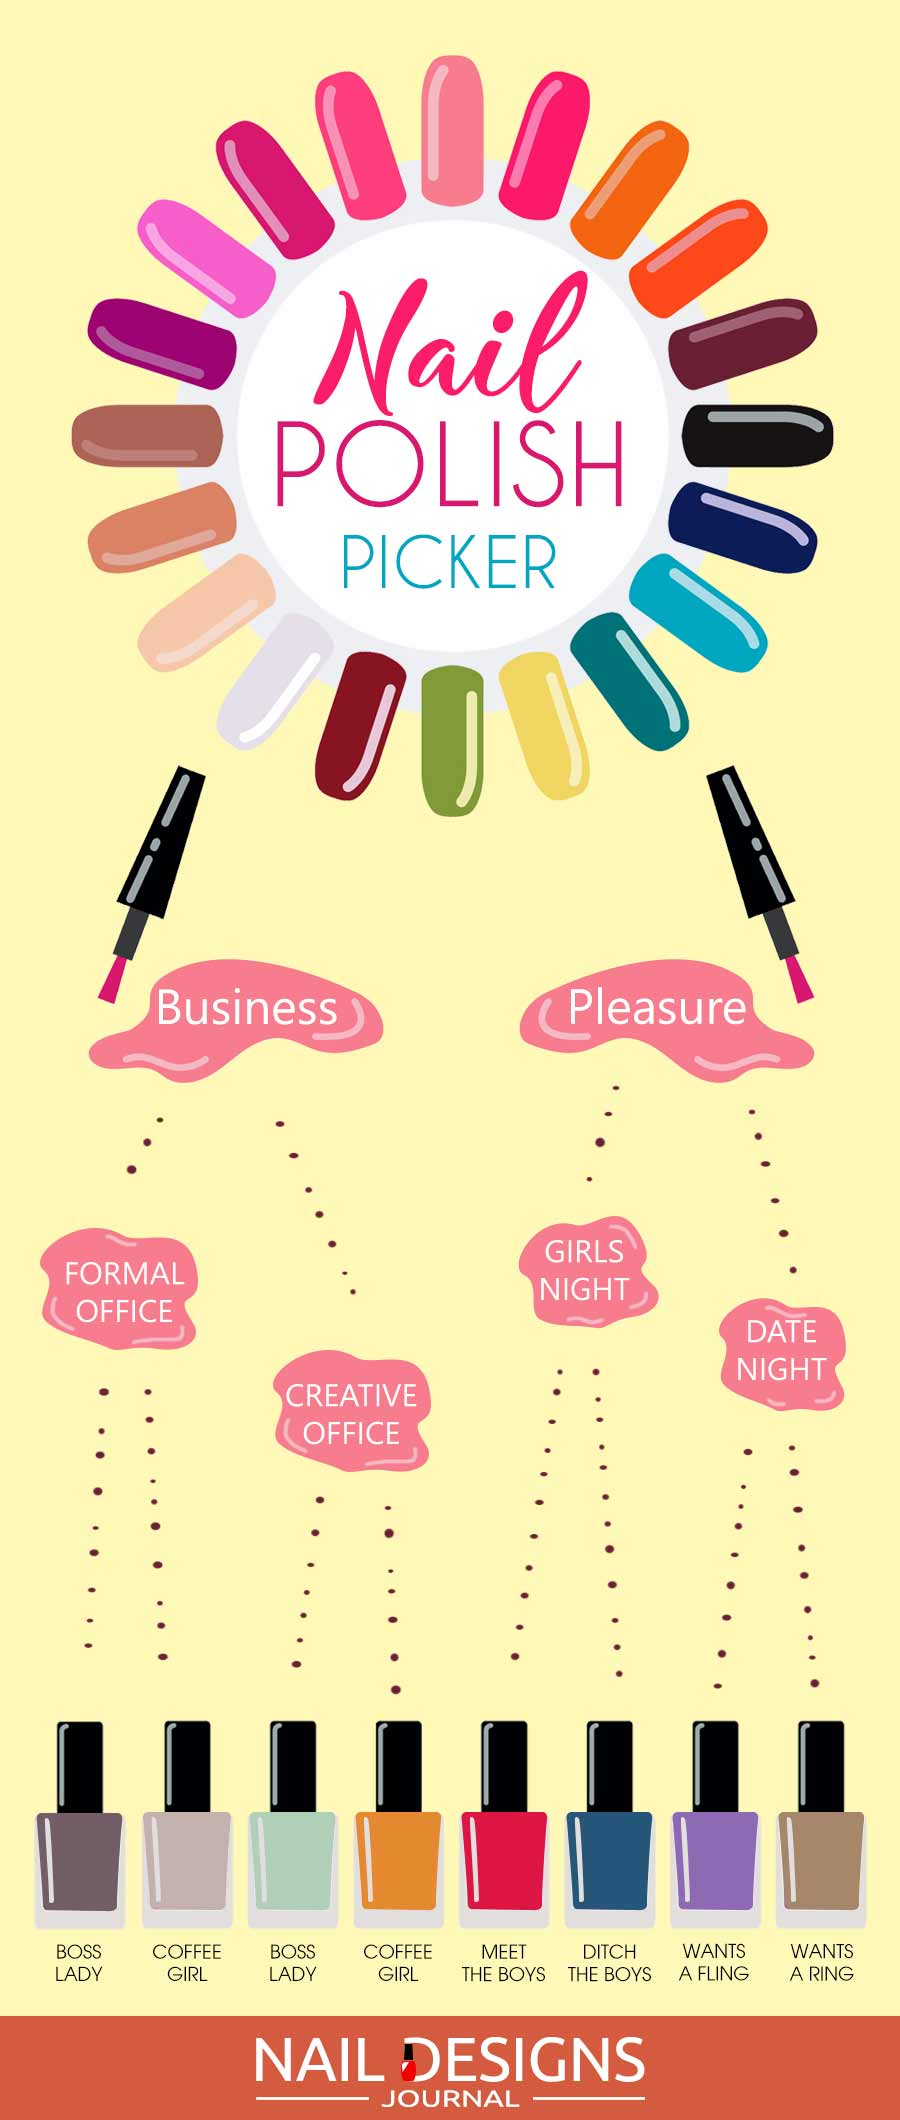 Best Nail Polish Colors and Designs Find Out Must Have Spring Trends Infographic